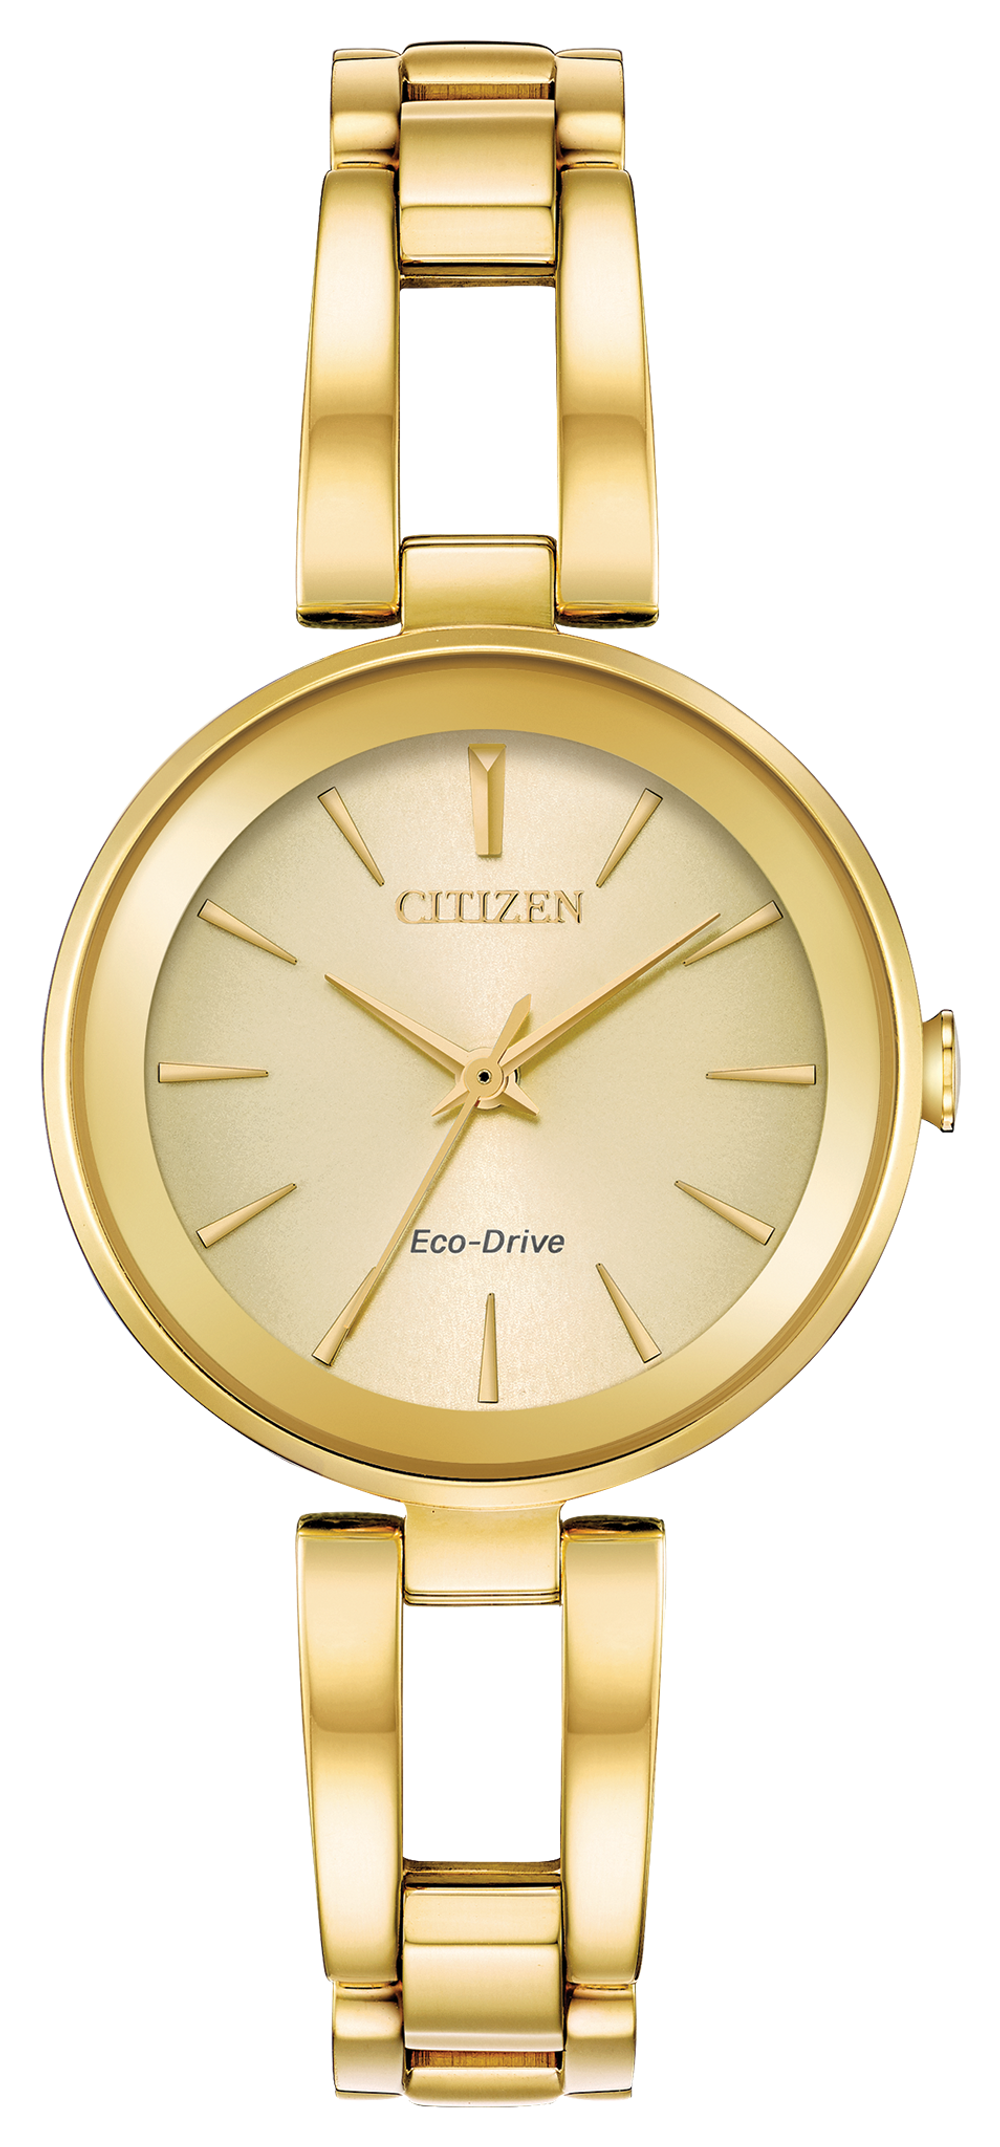 Citizen Eco Drive Watch Gold Tone; Champane Face